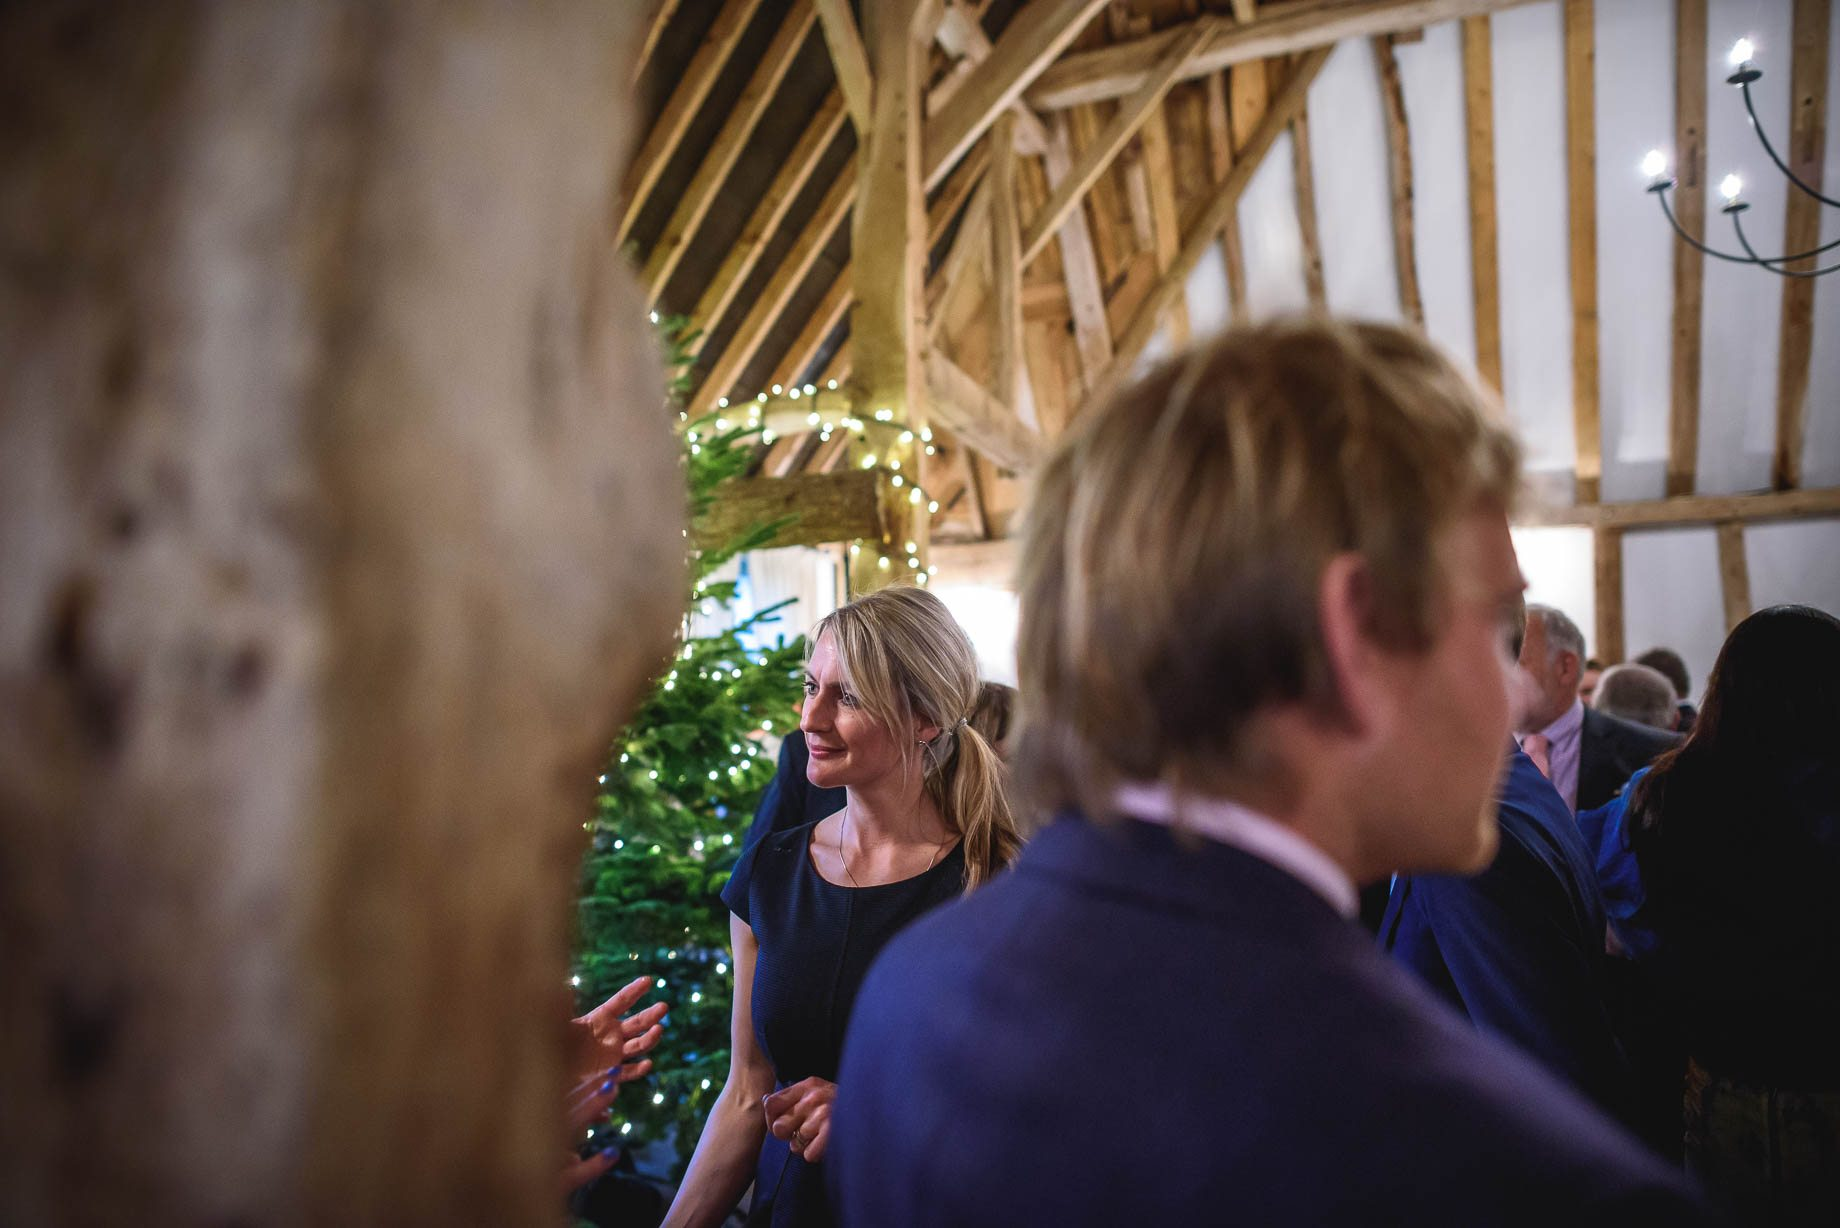 Clock Barn Wedding Photography - Eva and Ollie (94 of 170)